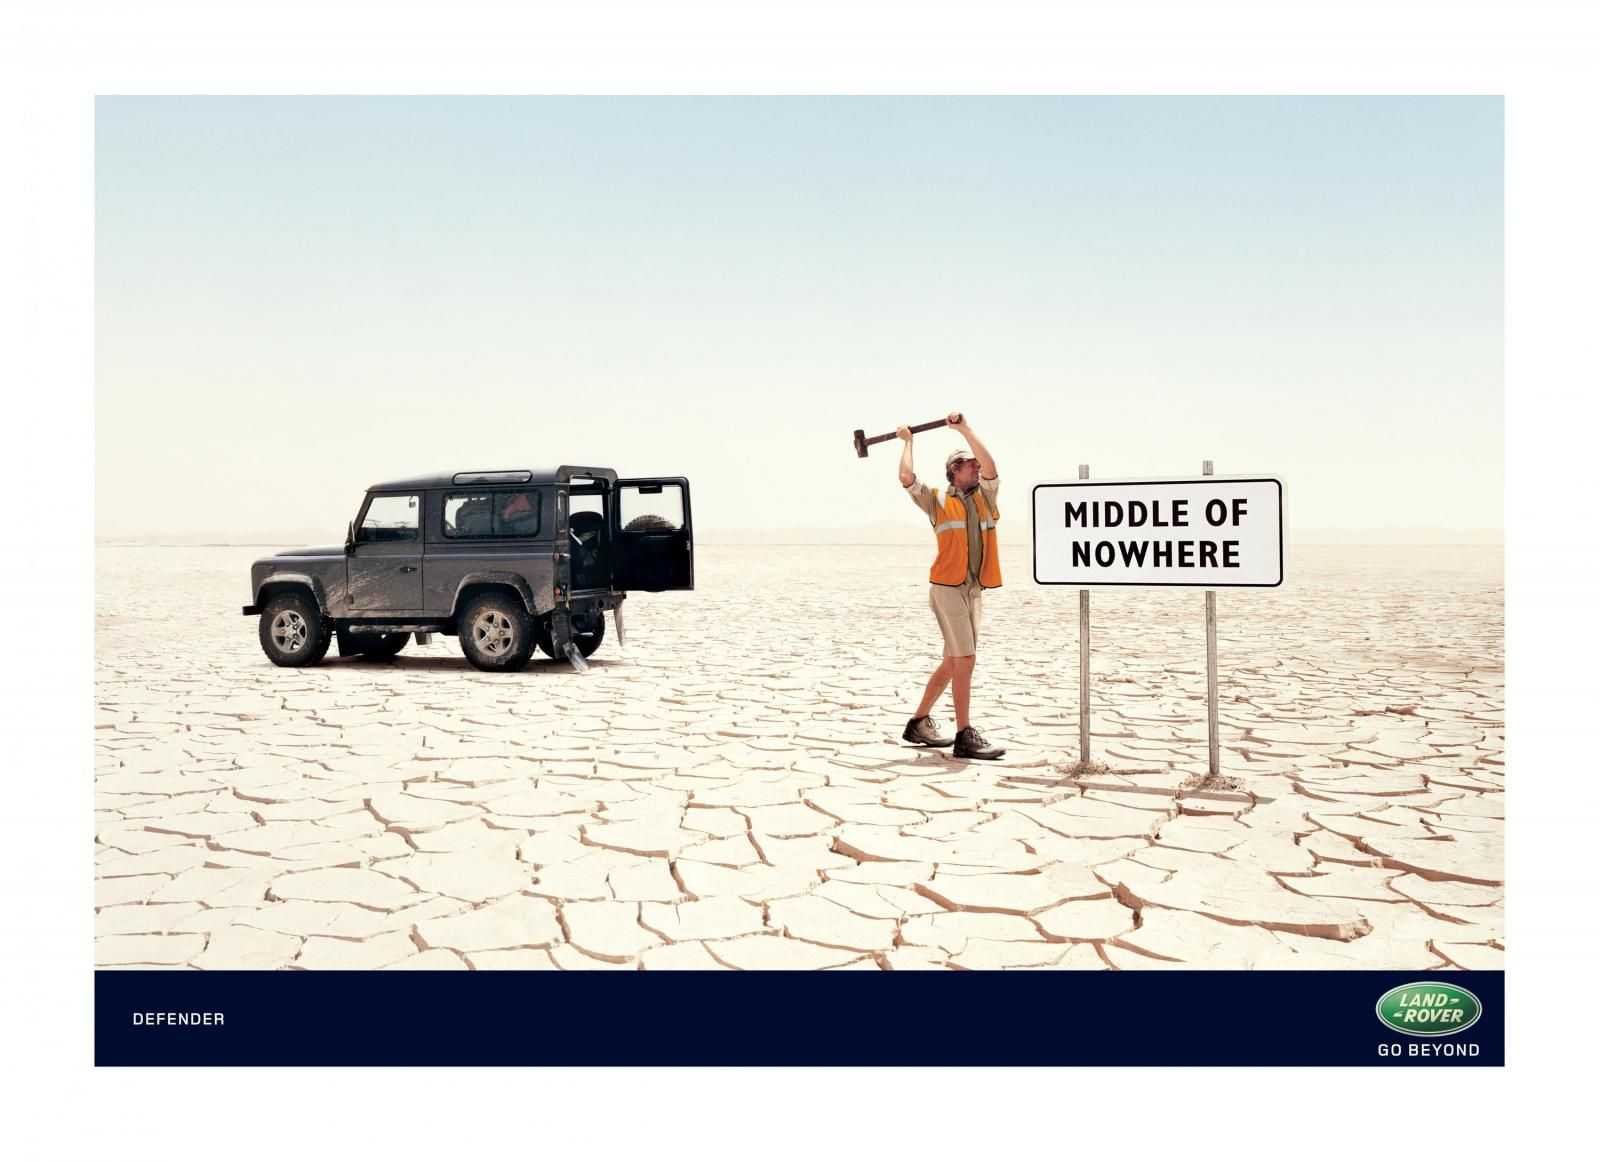 Land rover defender middle of nowhere print ad by rainey